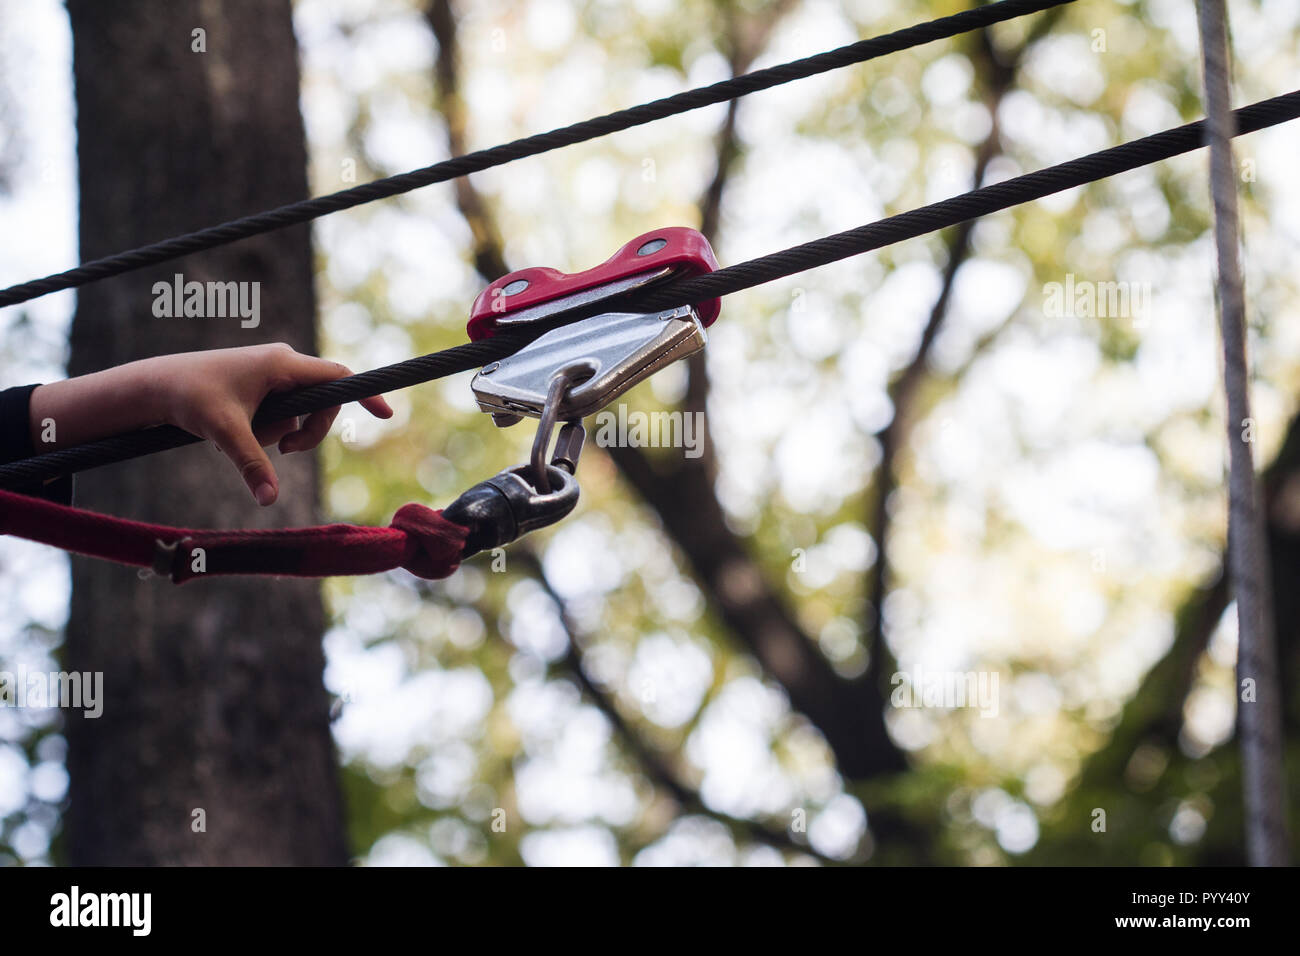 closeup of child hand using a safety climbing equipment and carabiner on a zip line in a forest adventure park - Stock Image